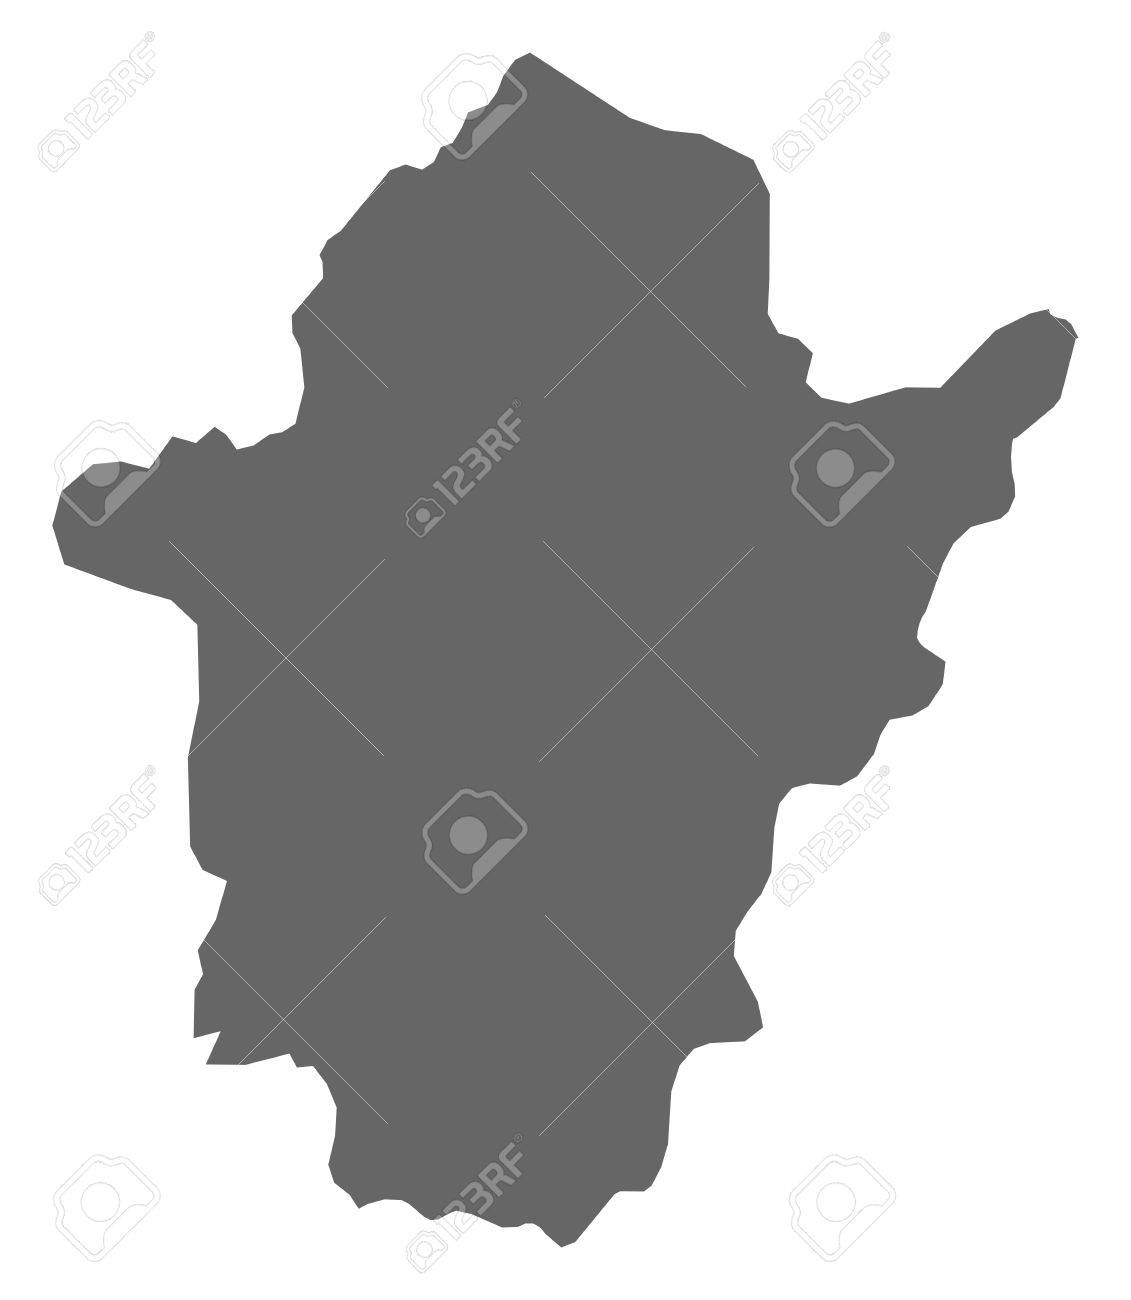 Map of B?k?s, a province of Hungary. - 60945707